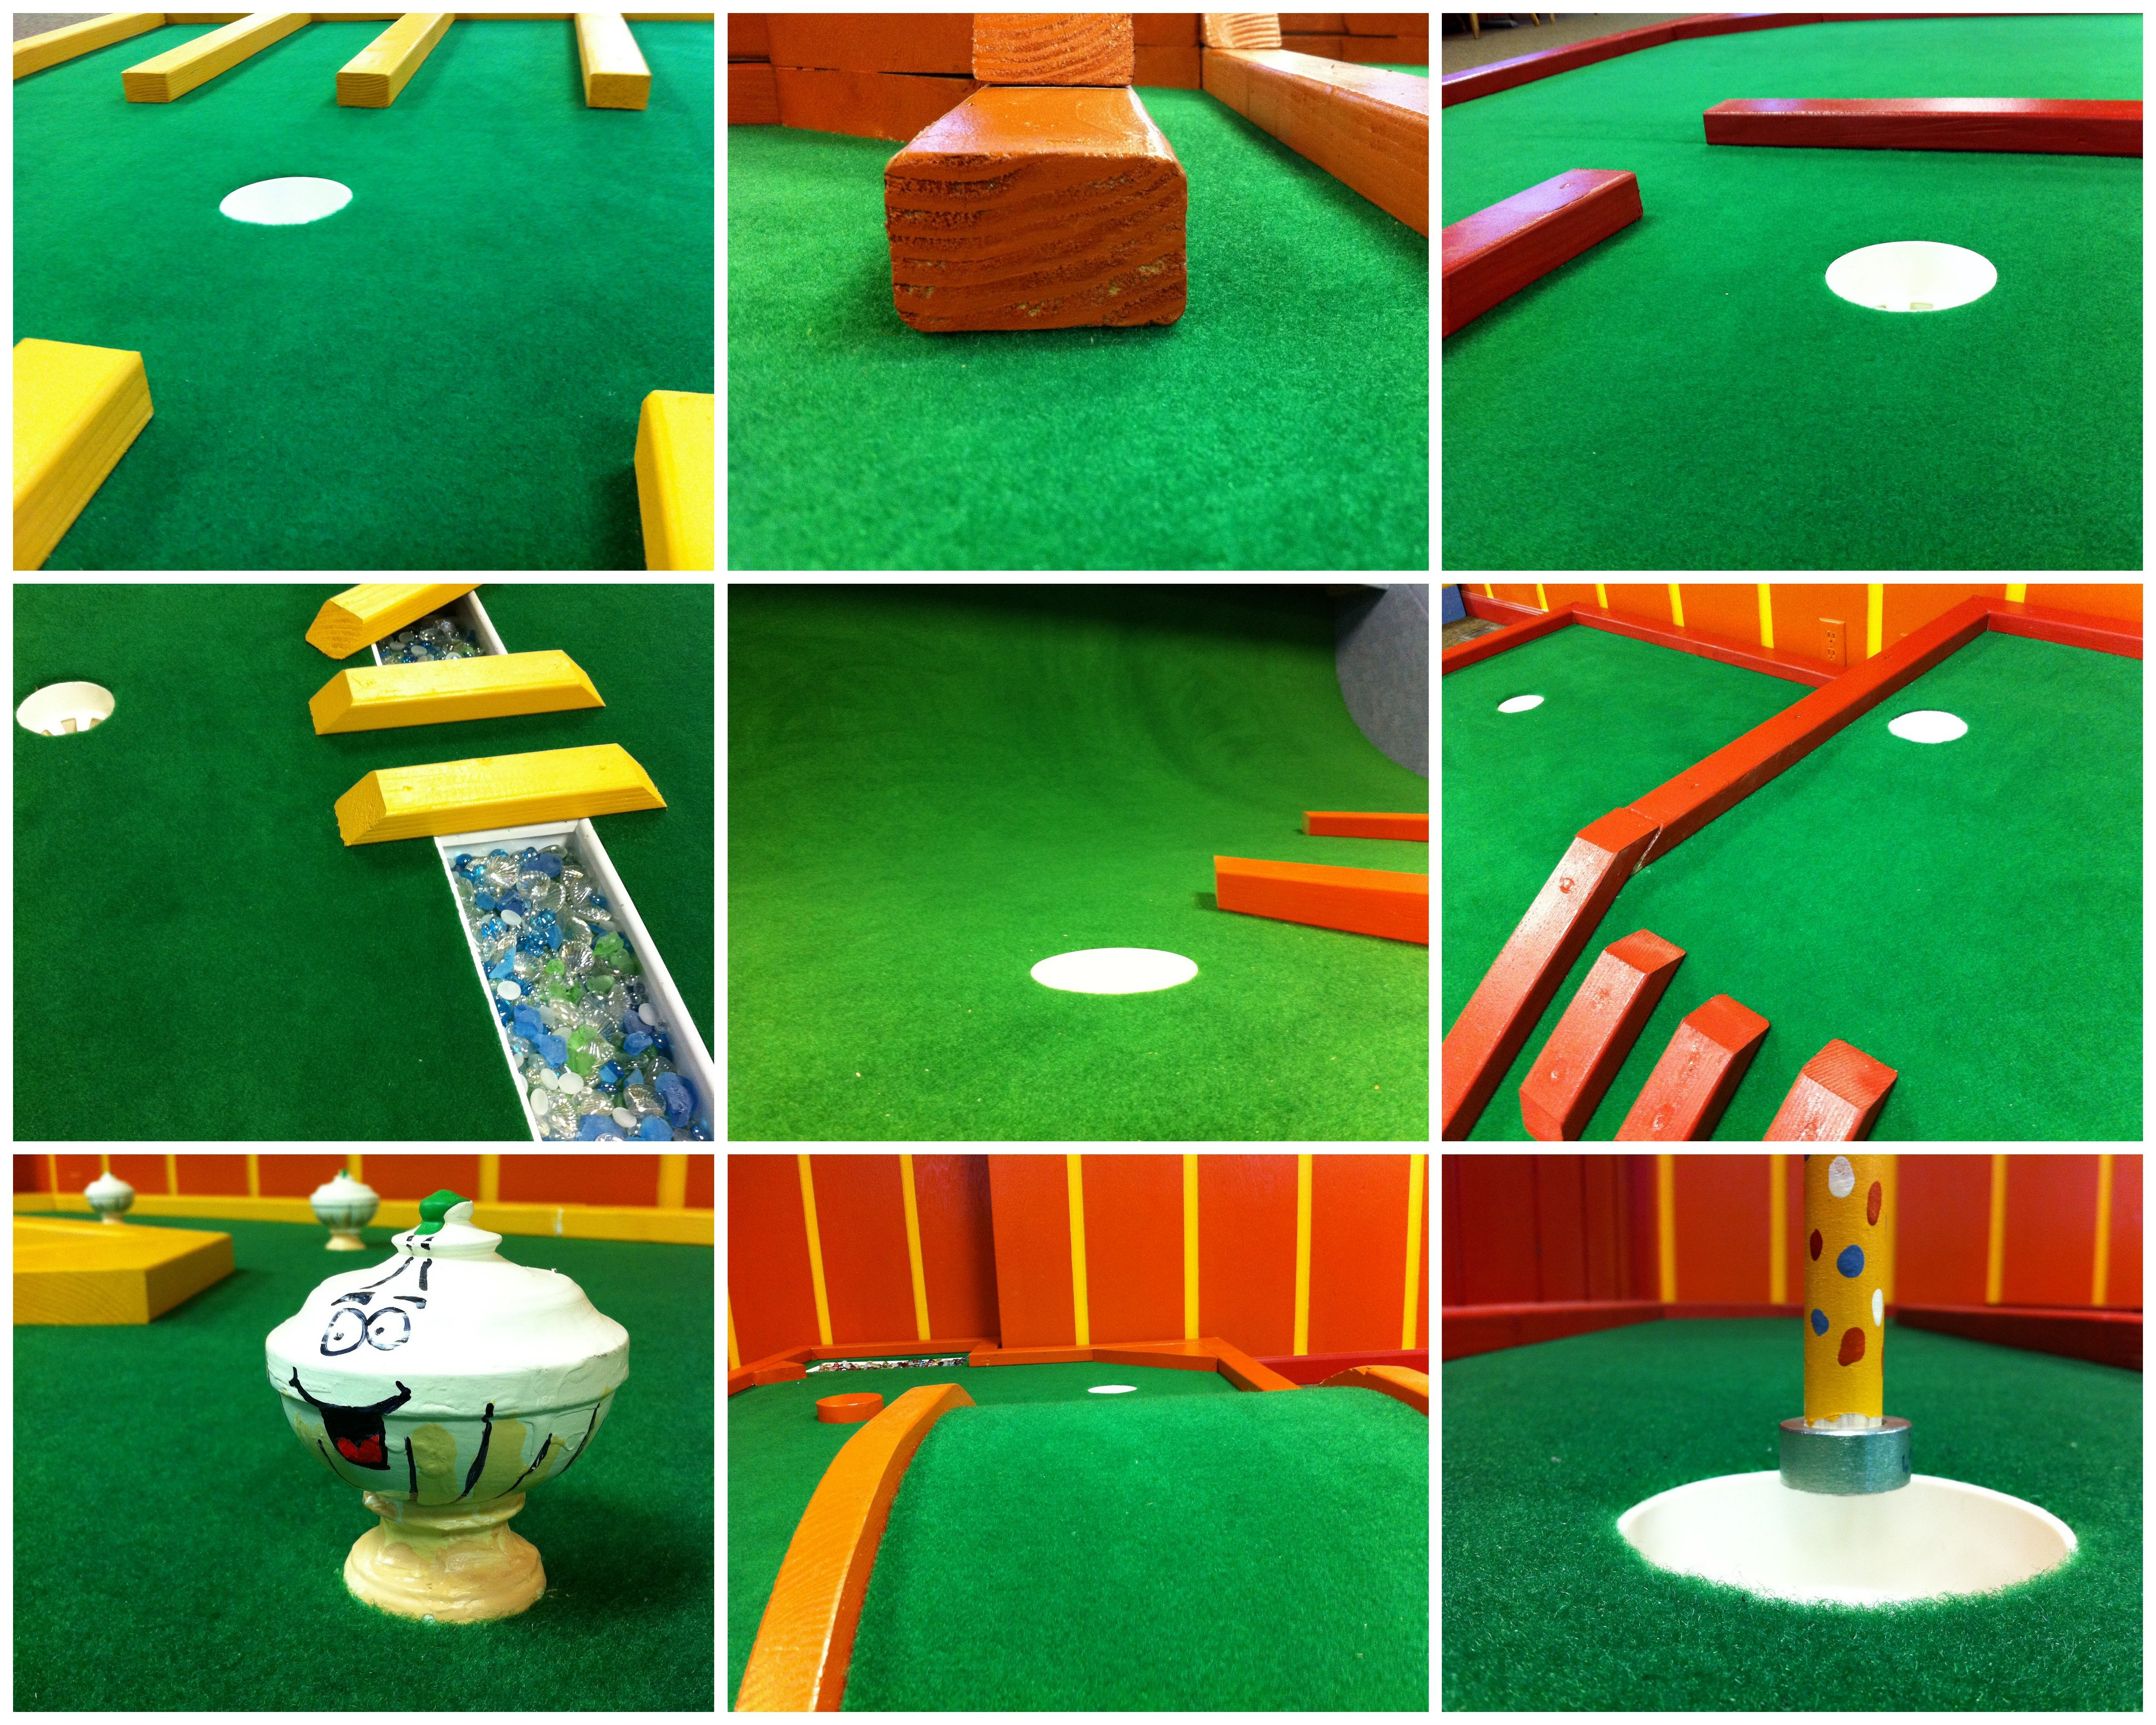 Close ups of the nine-hole indoor course at The Sweet Putt (www.thesweetputt.com)